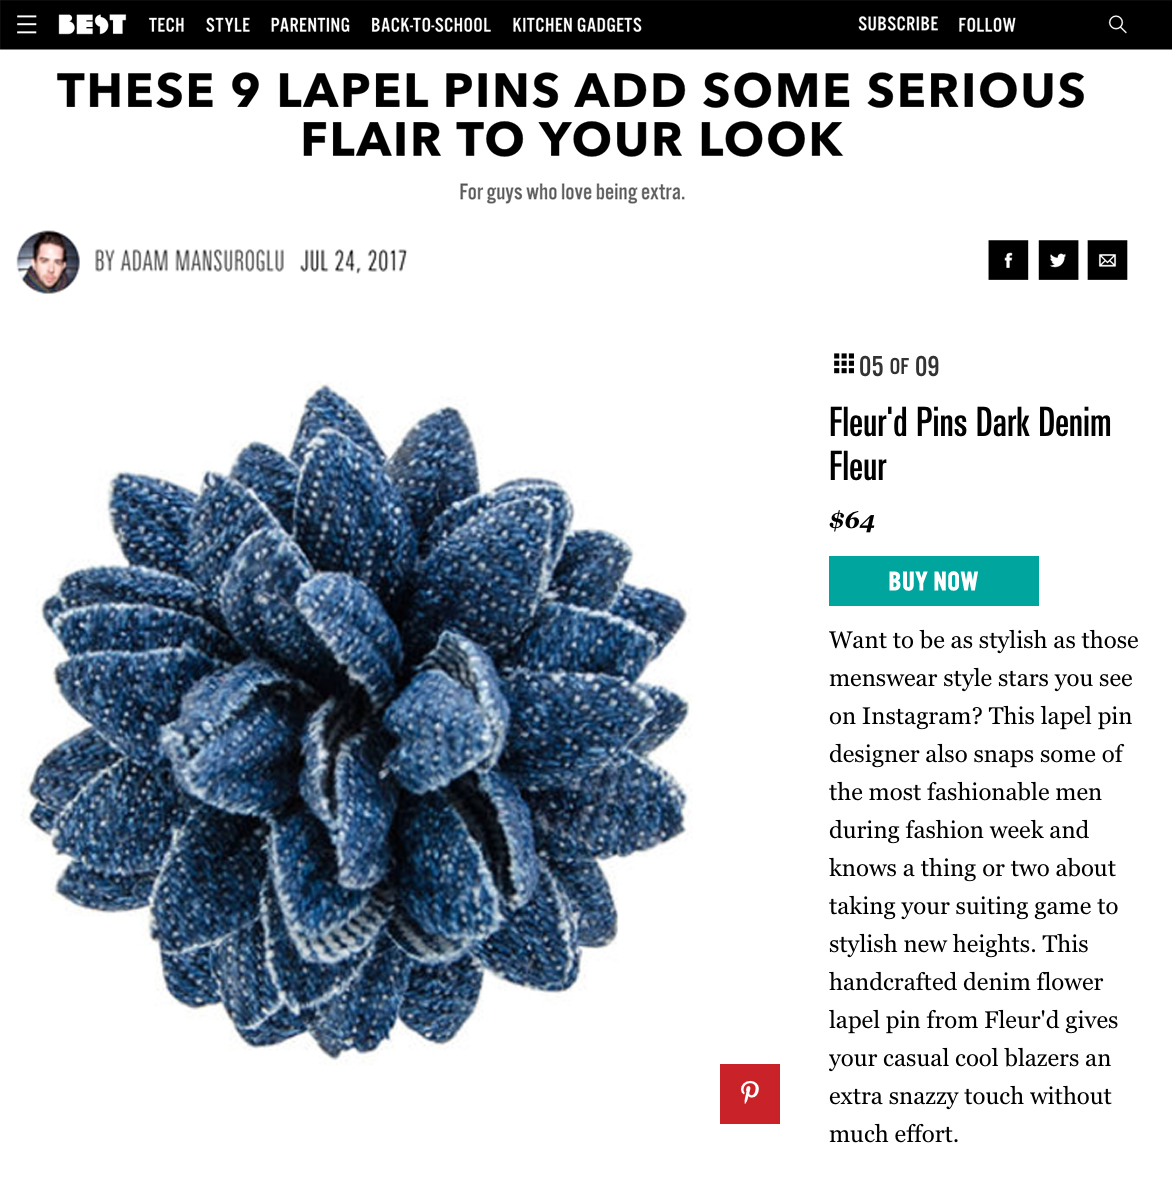 Fleur'd Pins featured on bestproducts.com - Dark Denim Fleur